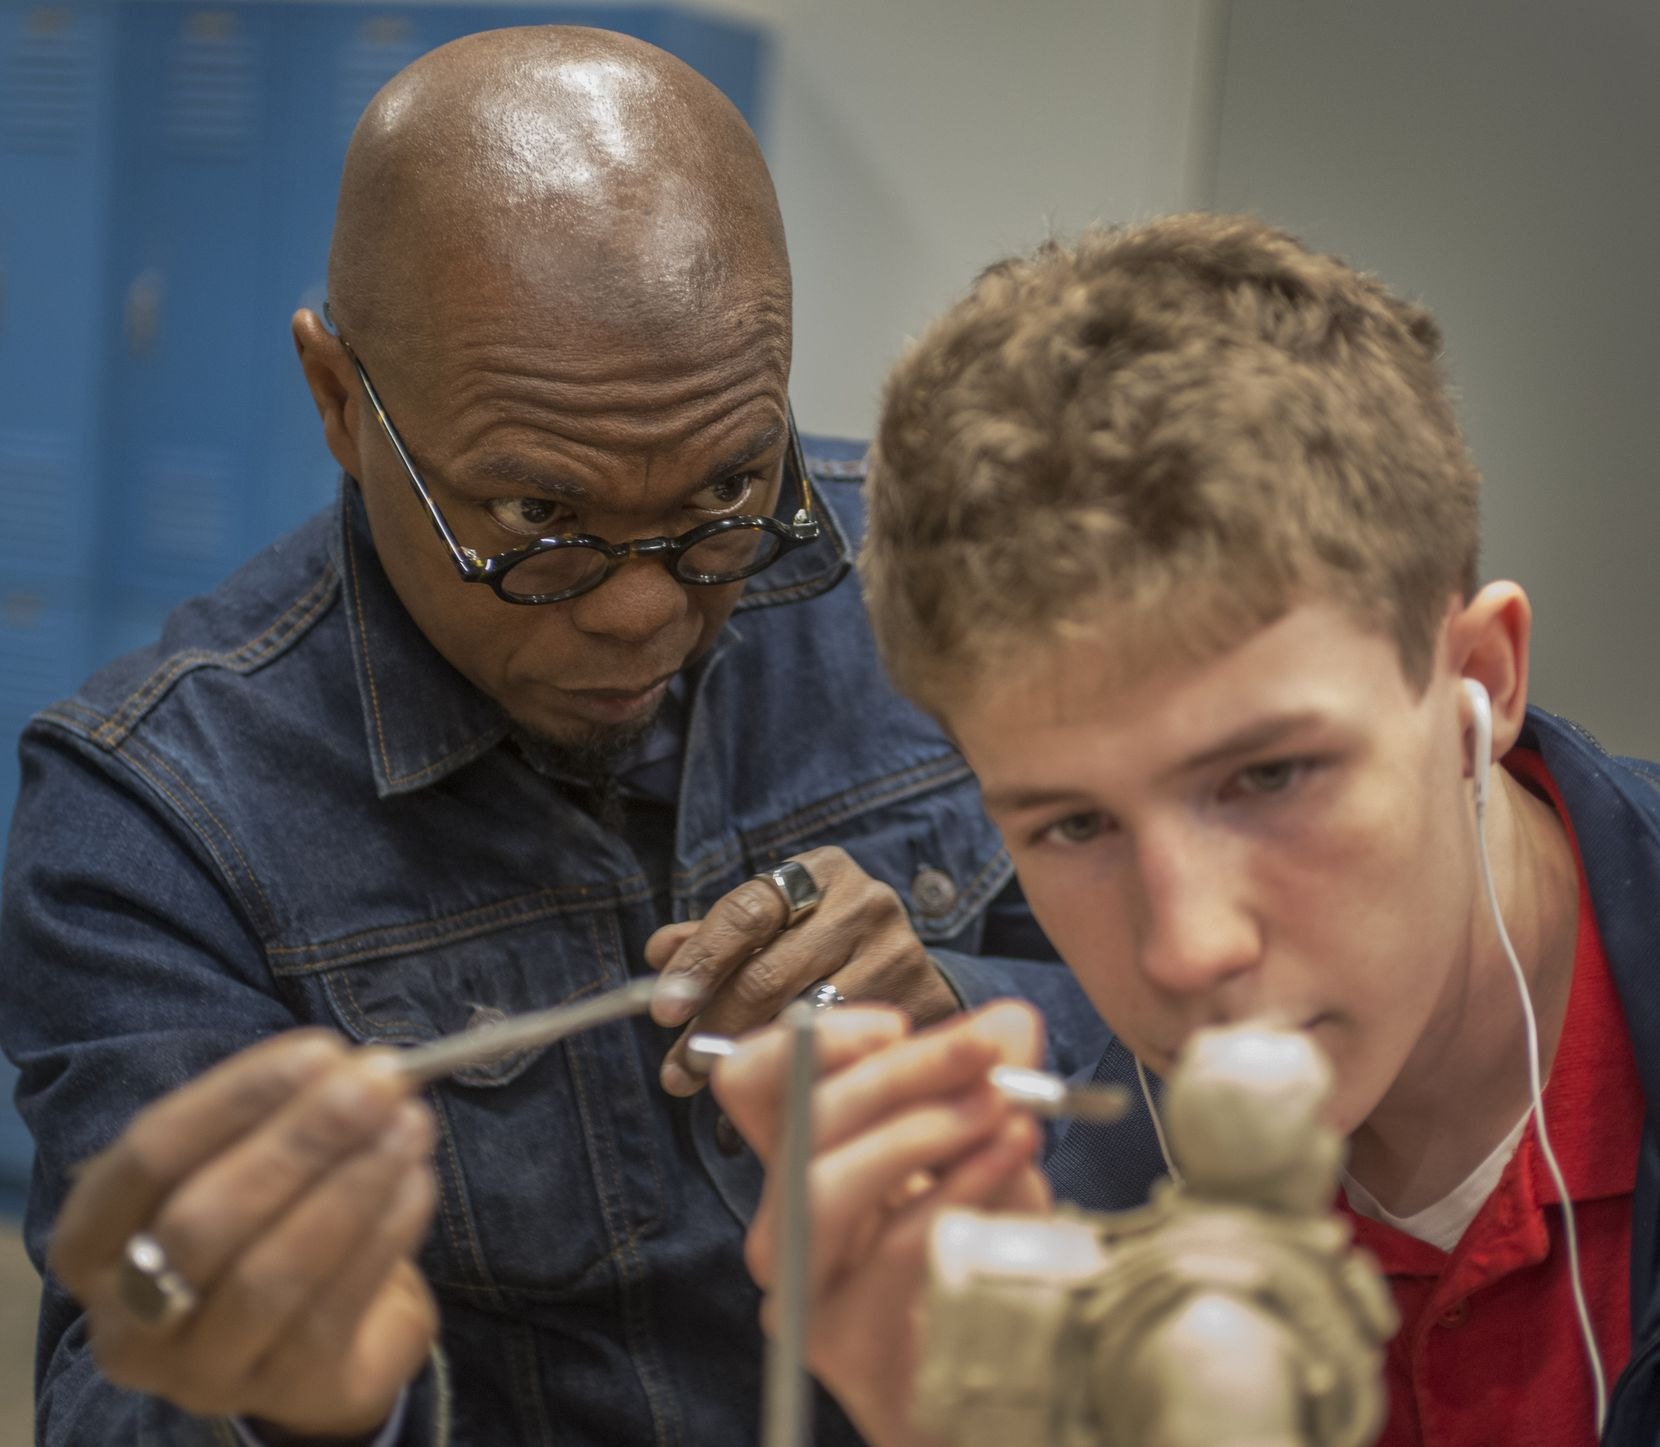 Sculptor Emmanuel Gillespie in the studio at The Winston School with student Chris Bird on a sculpture on January 16, 2019 in Dallas, Texas.